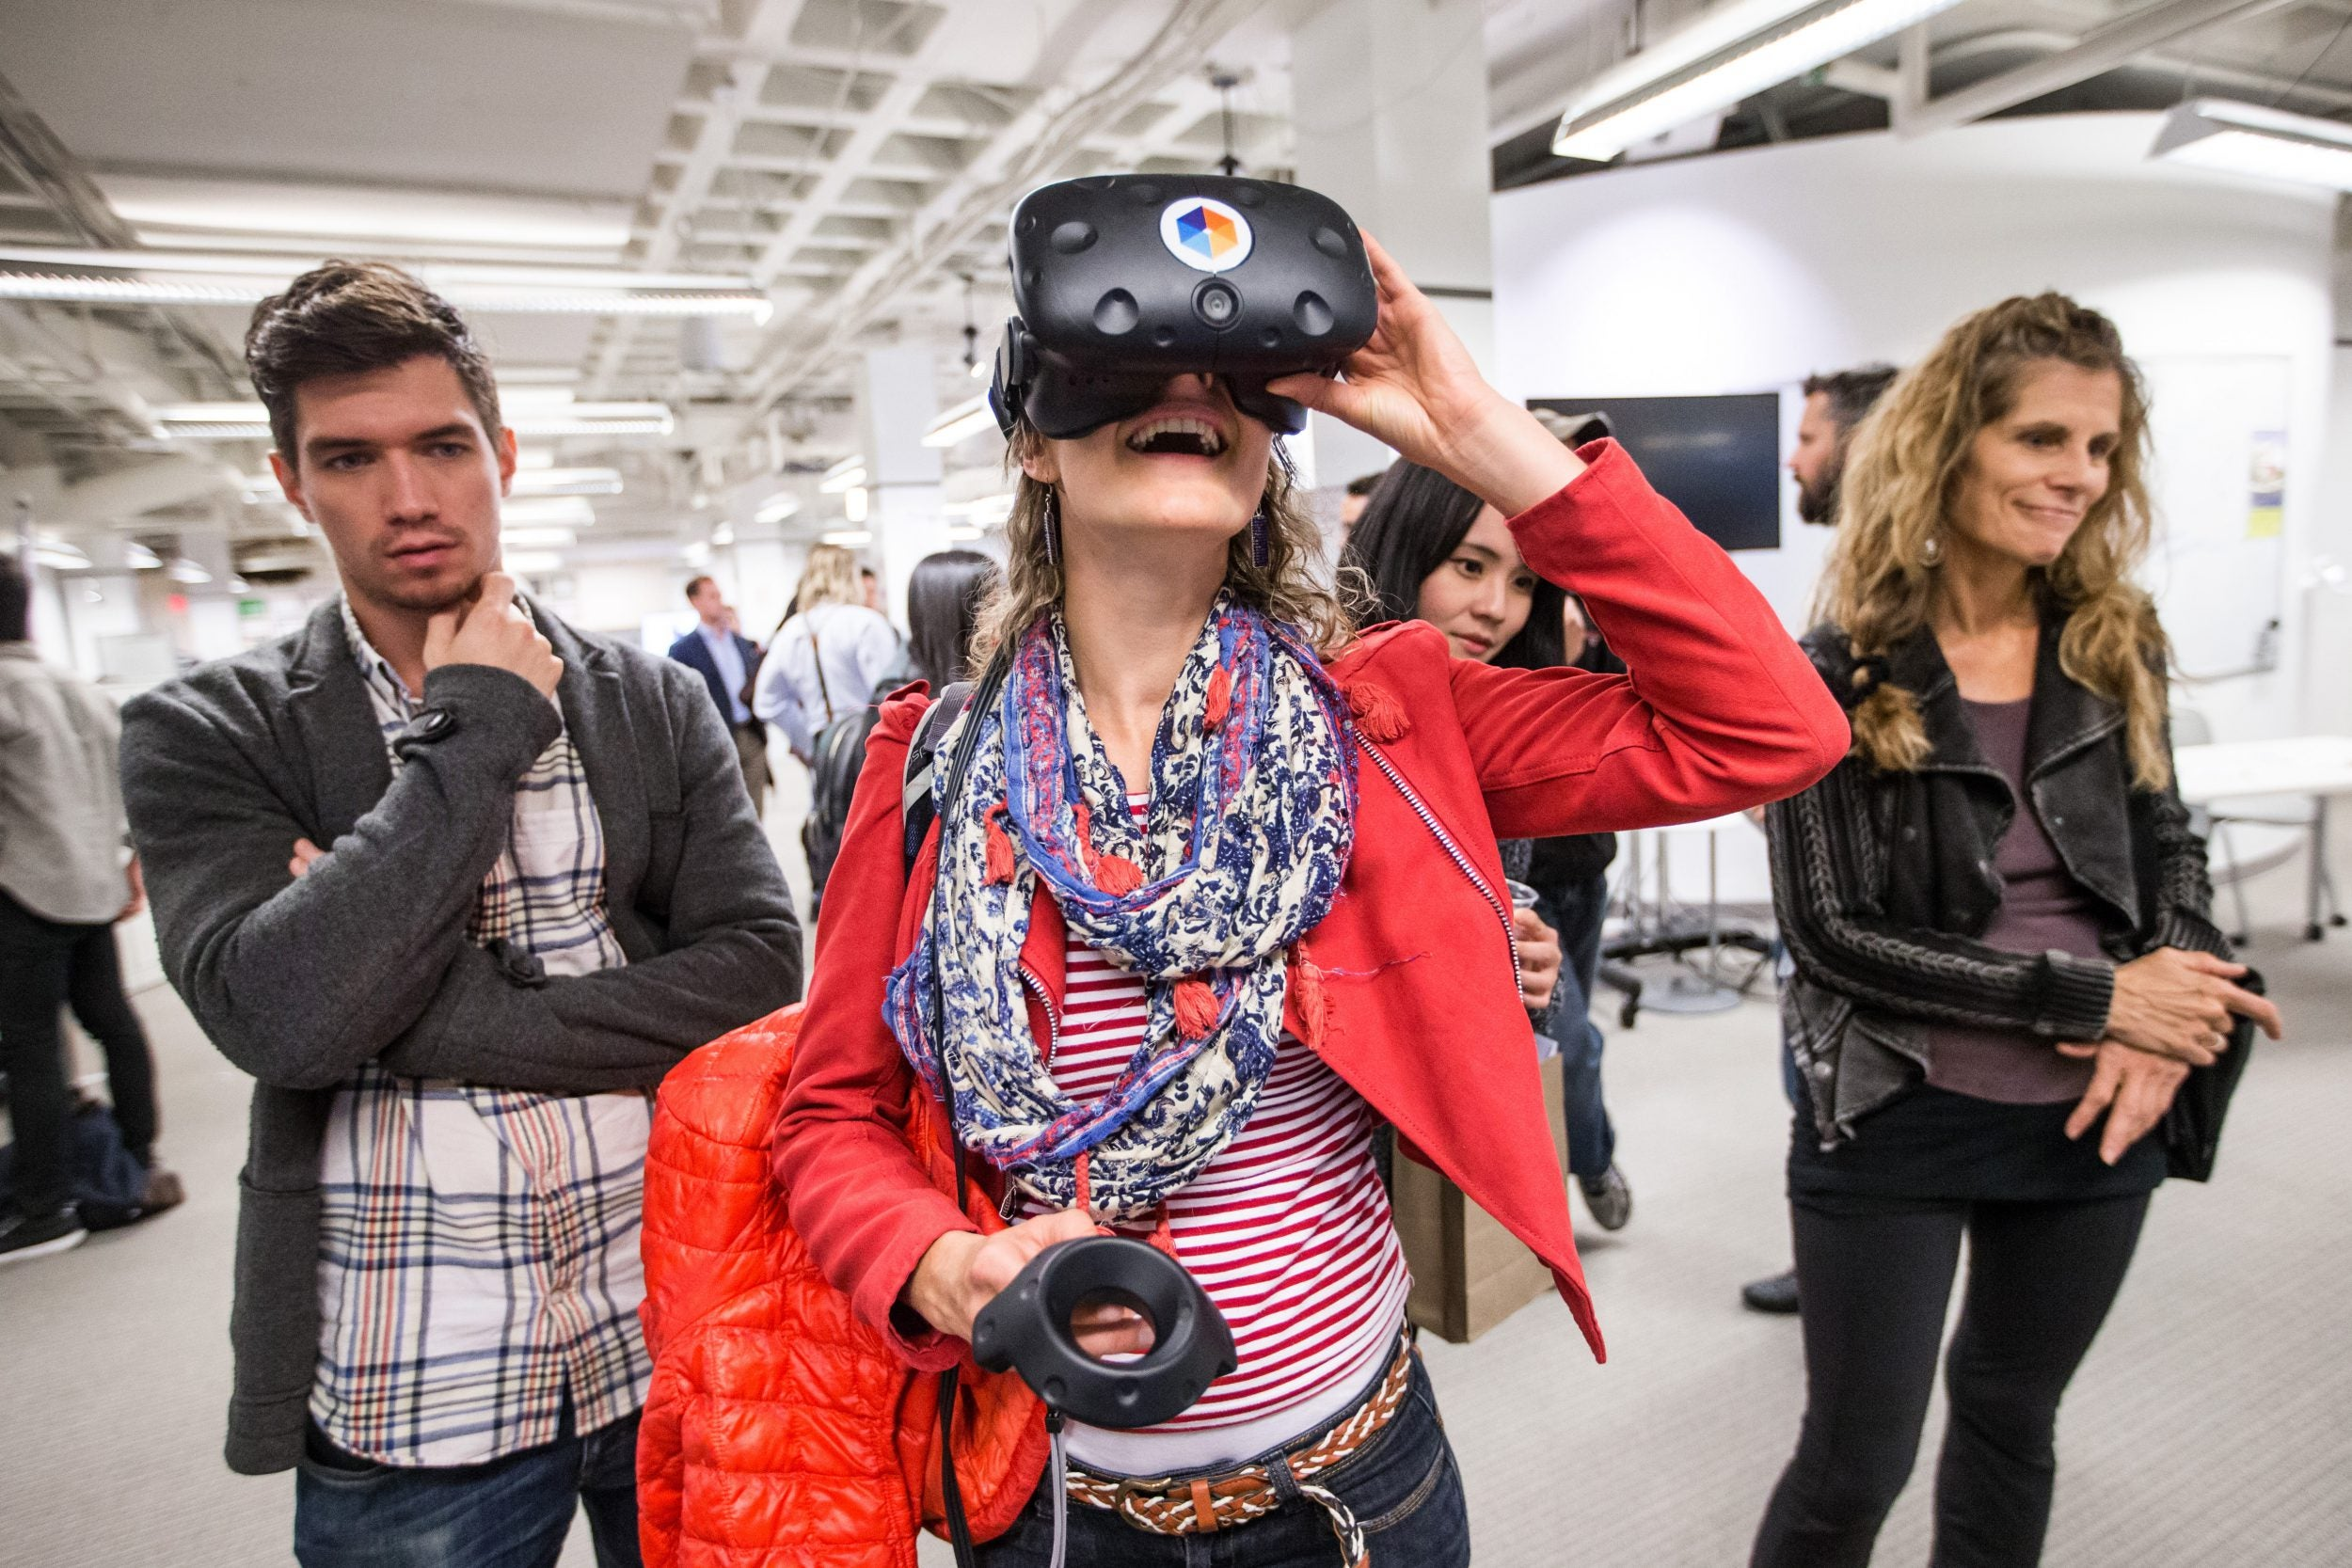 Students test out the HTC Vive virtual reality system at HUBweek.